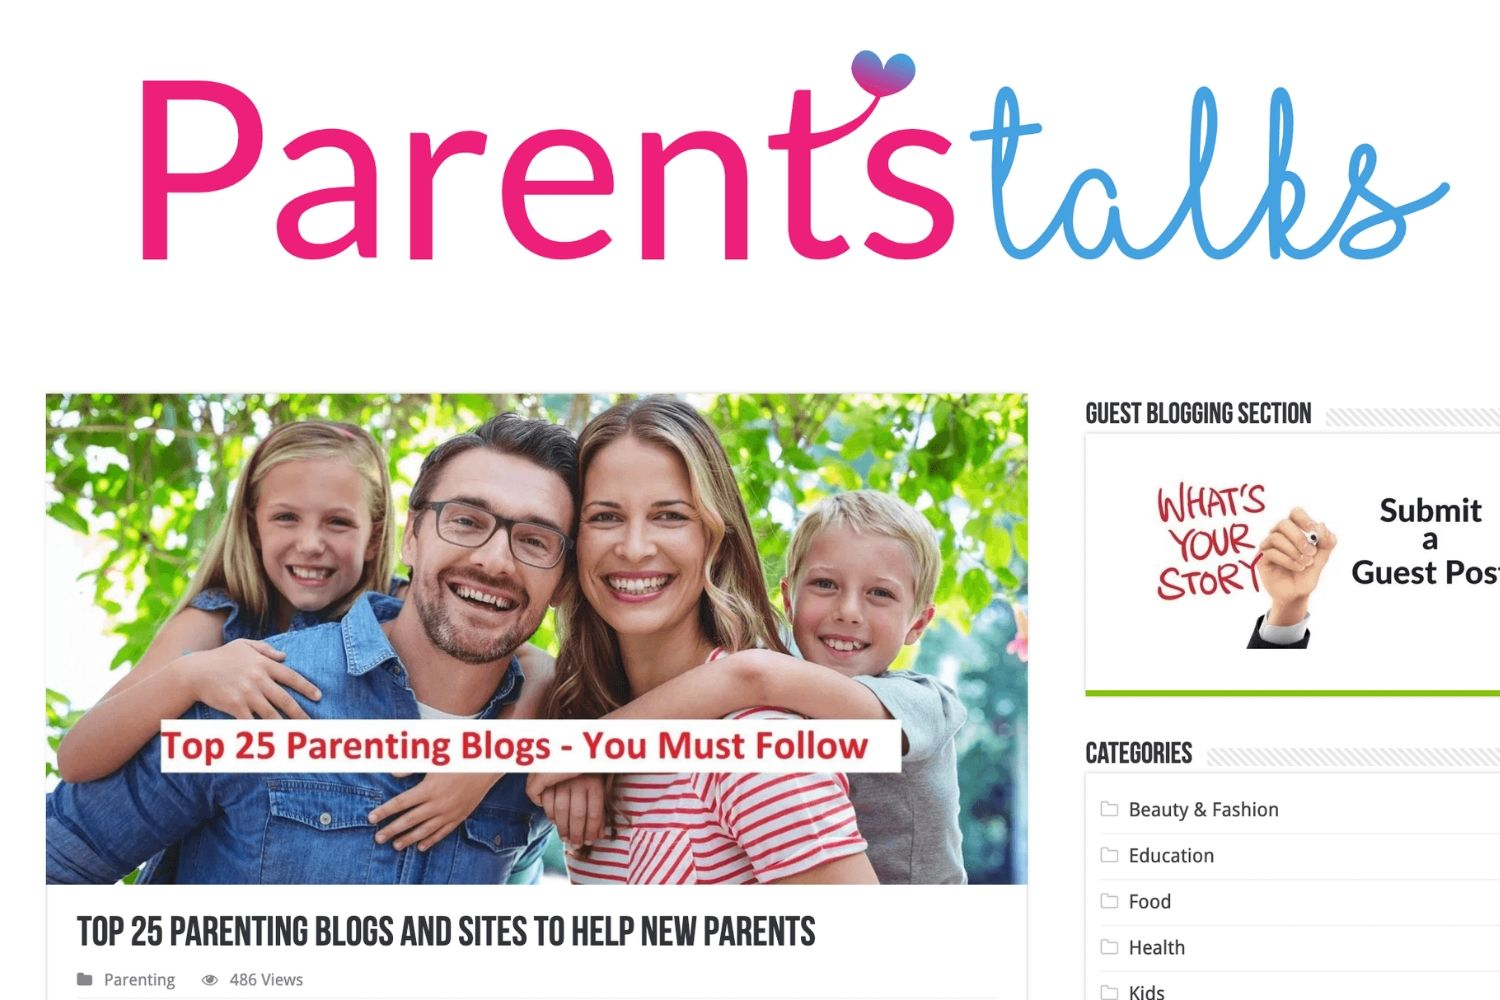 Top 25 parenting blogs in India